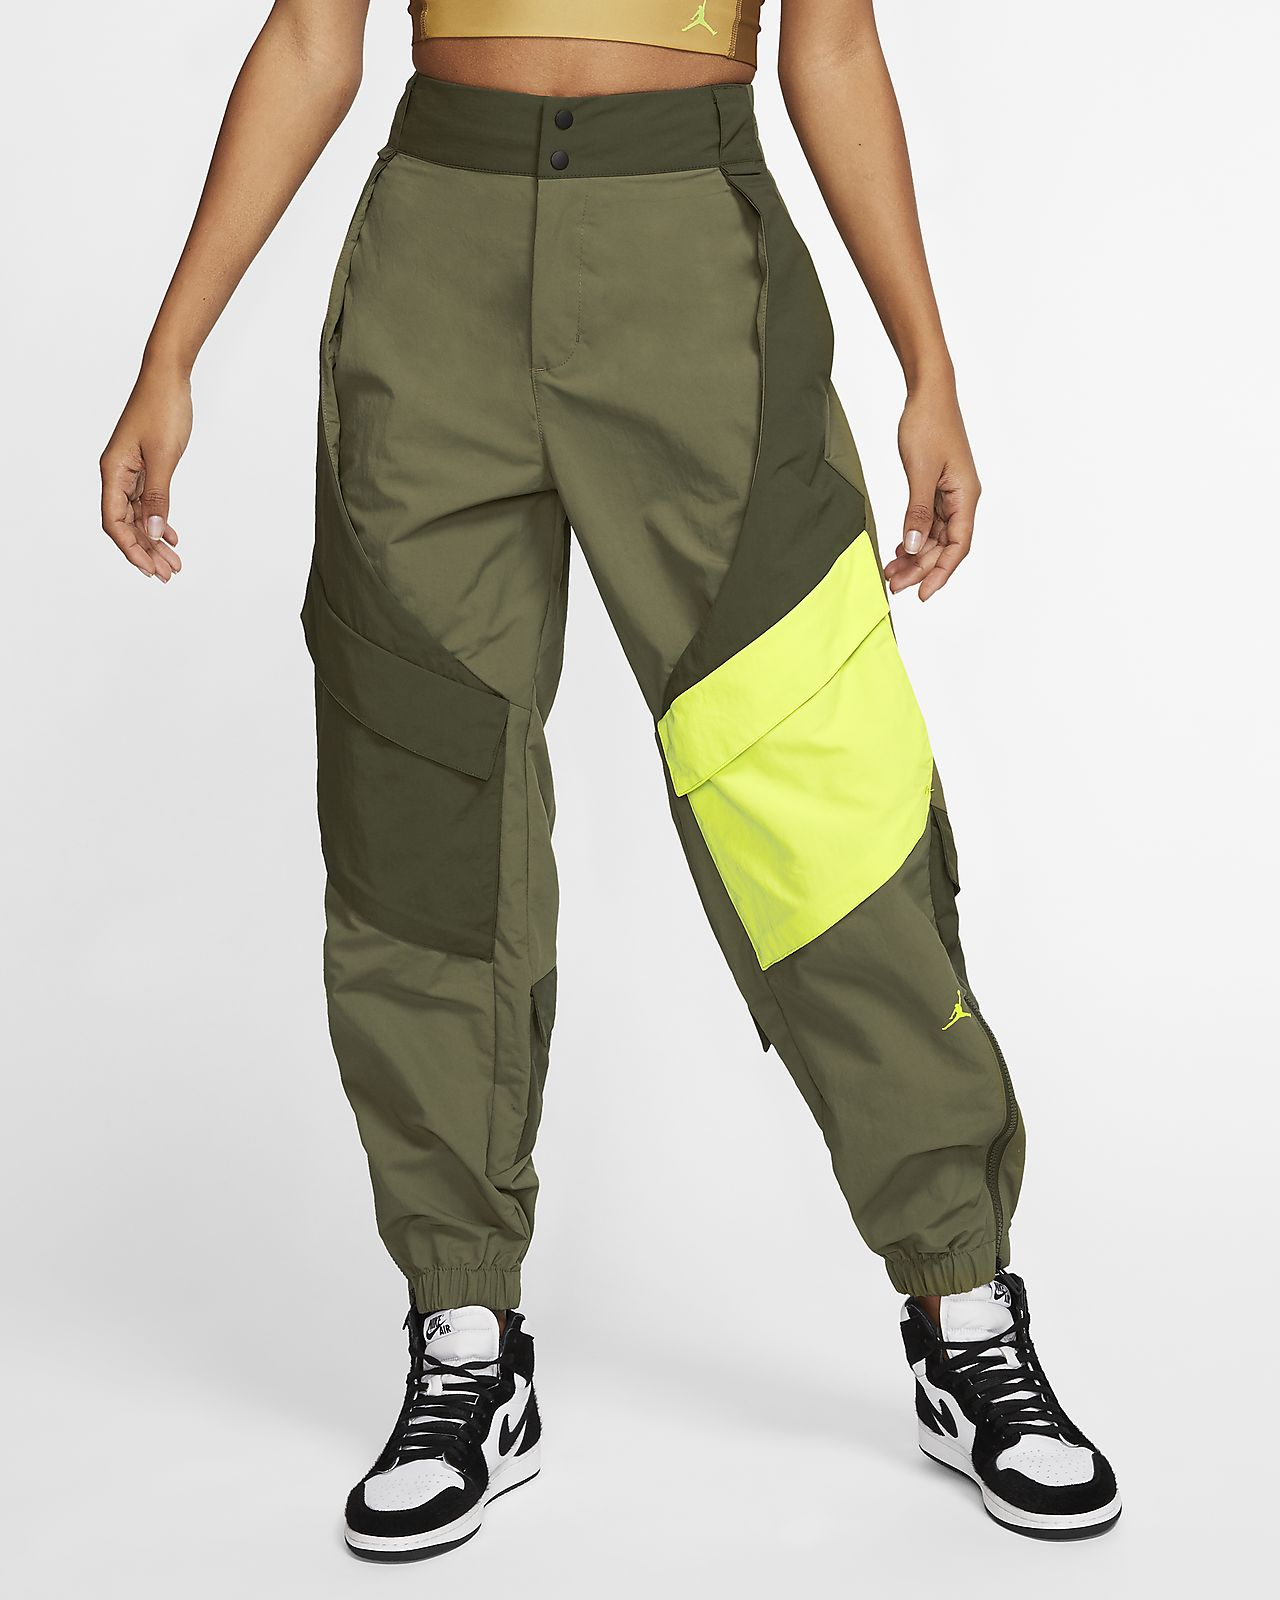 Jordan Women's Utility Trousers